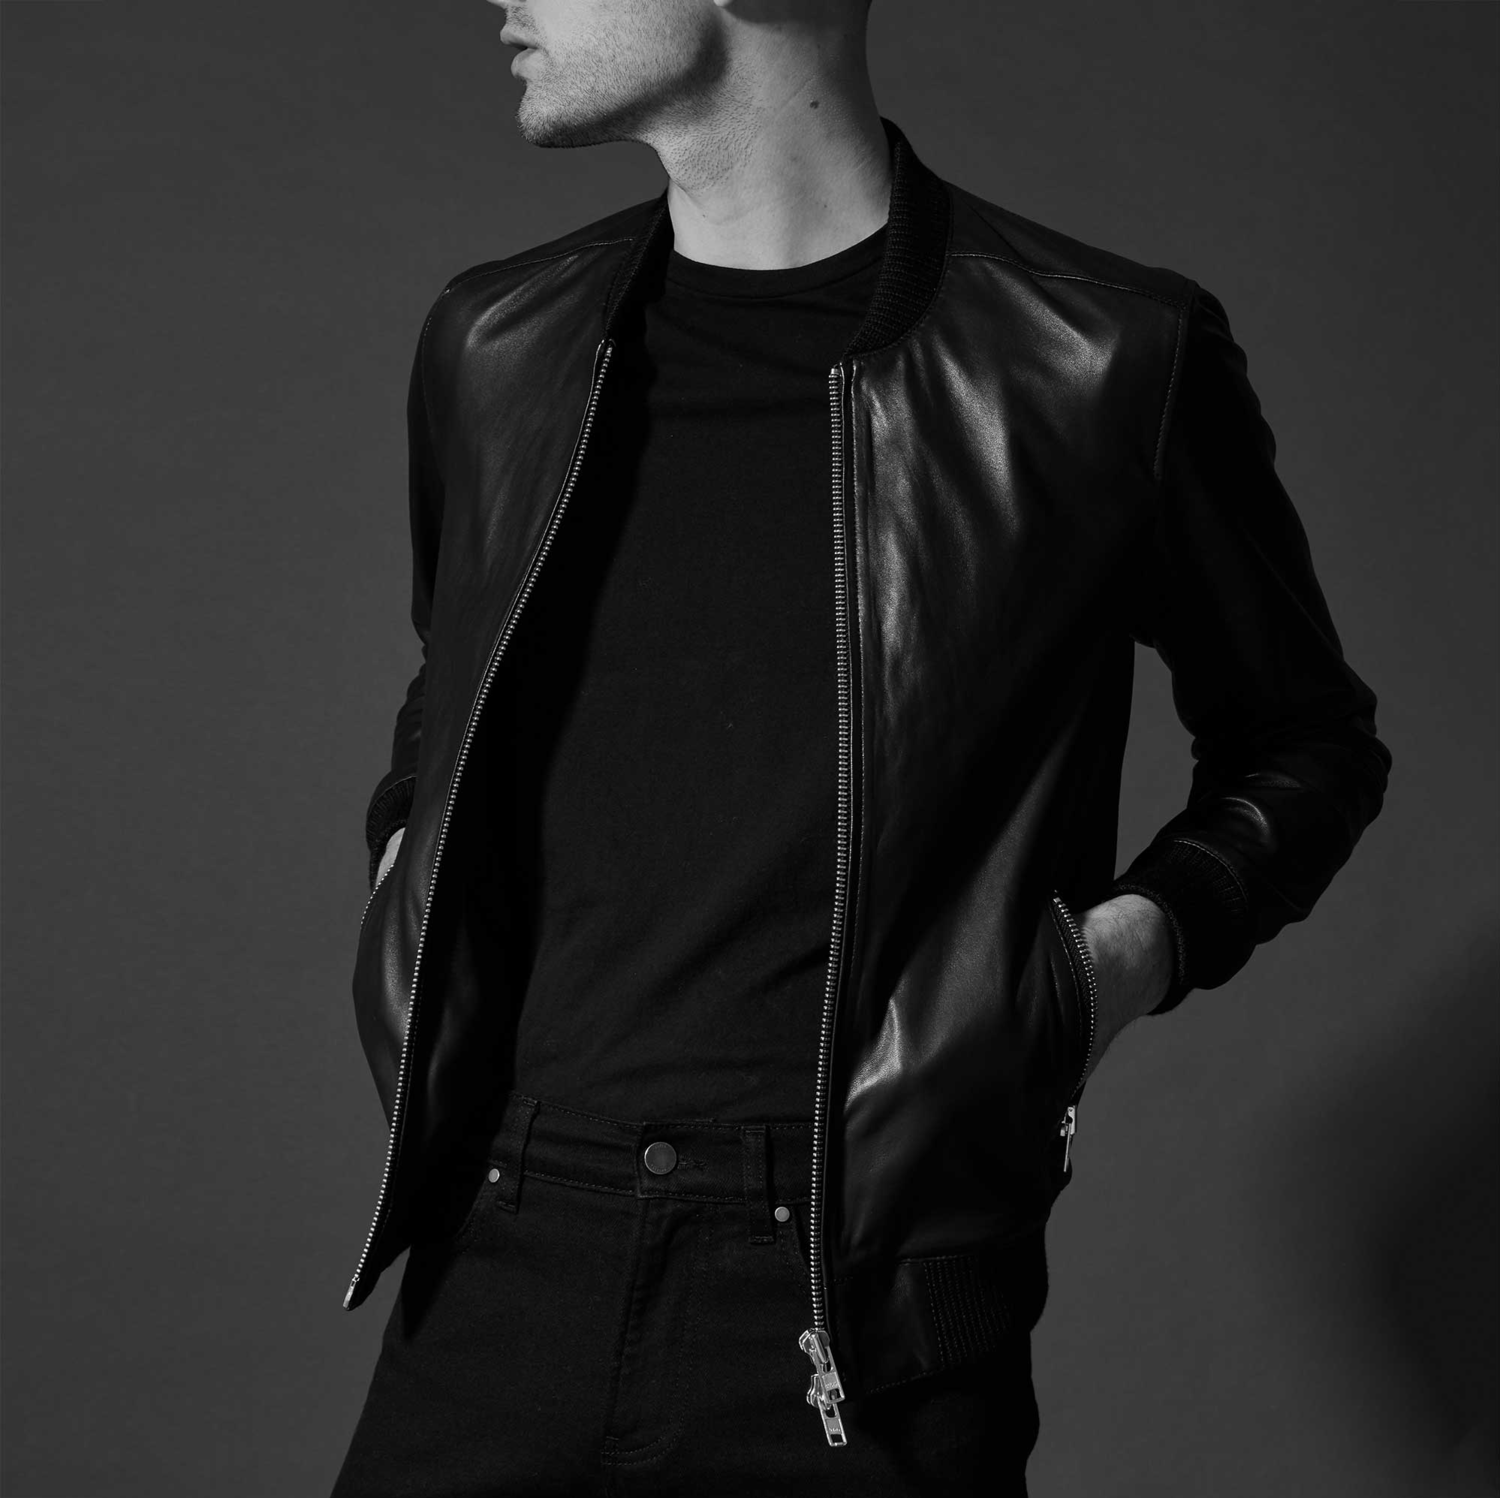 schermo trasfusione conversione  Mens Leather Bomber Jacket In Black $350 | DSTLD